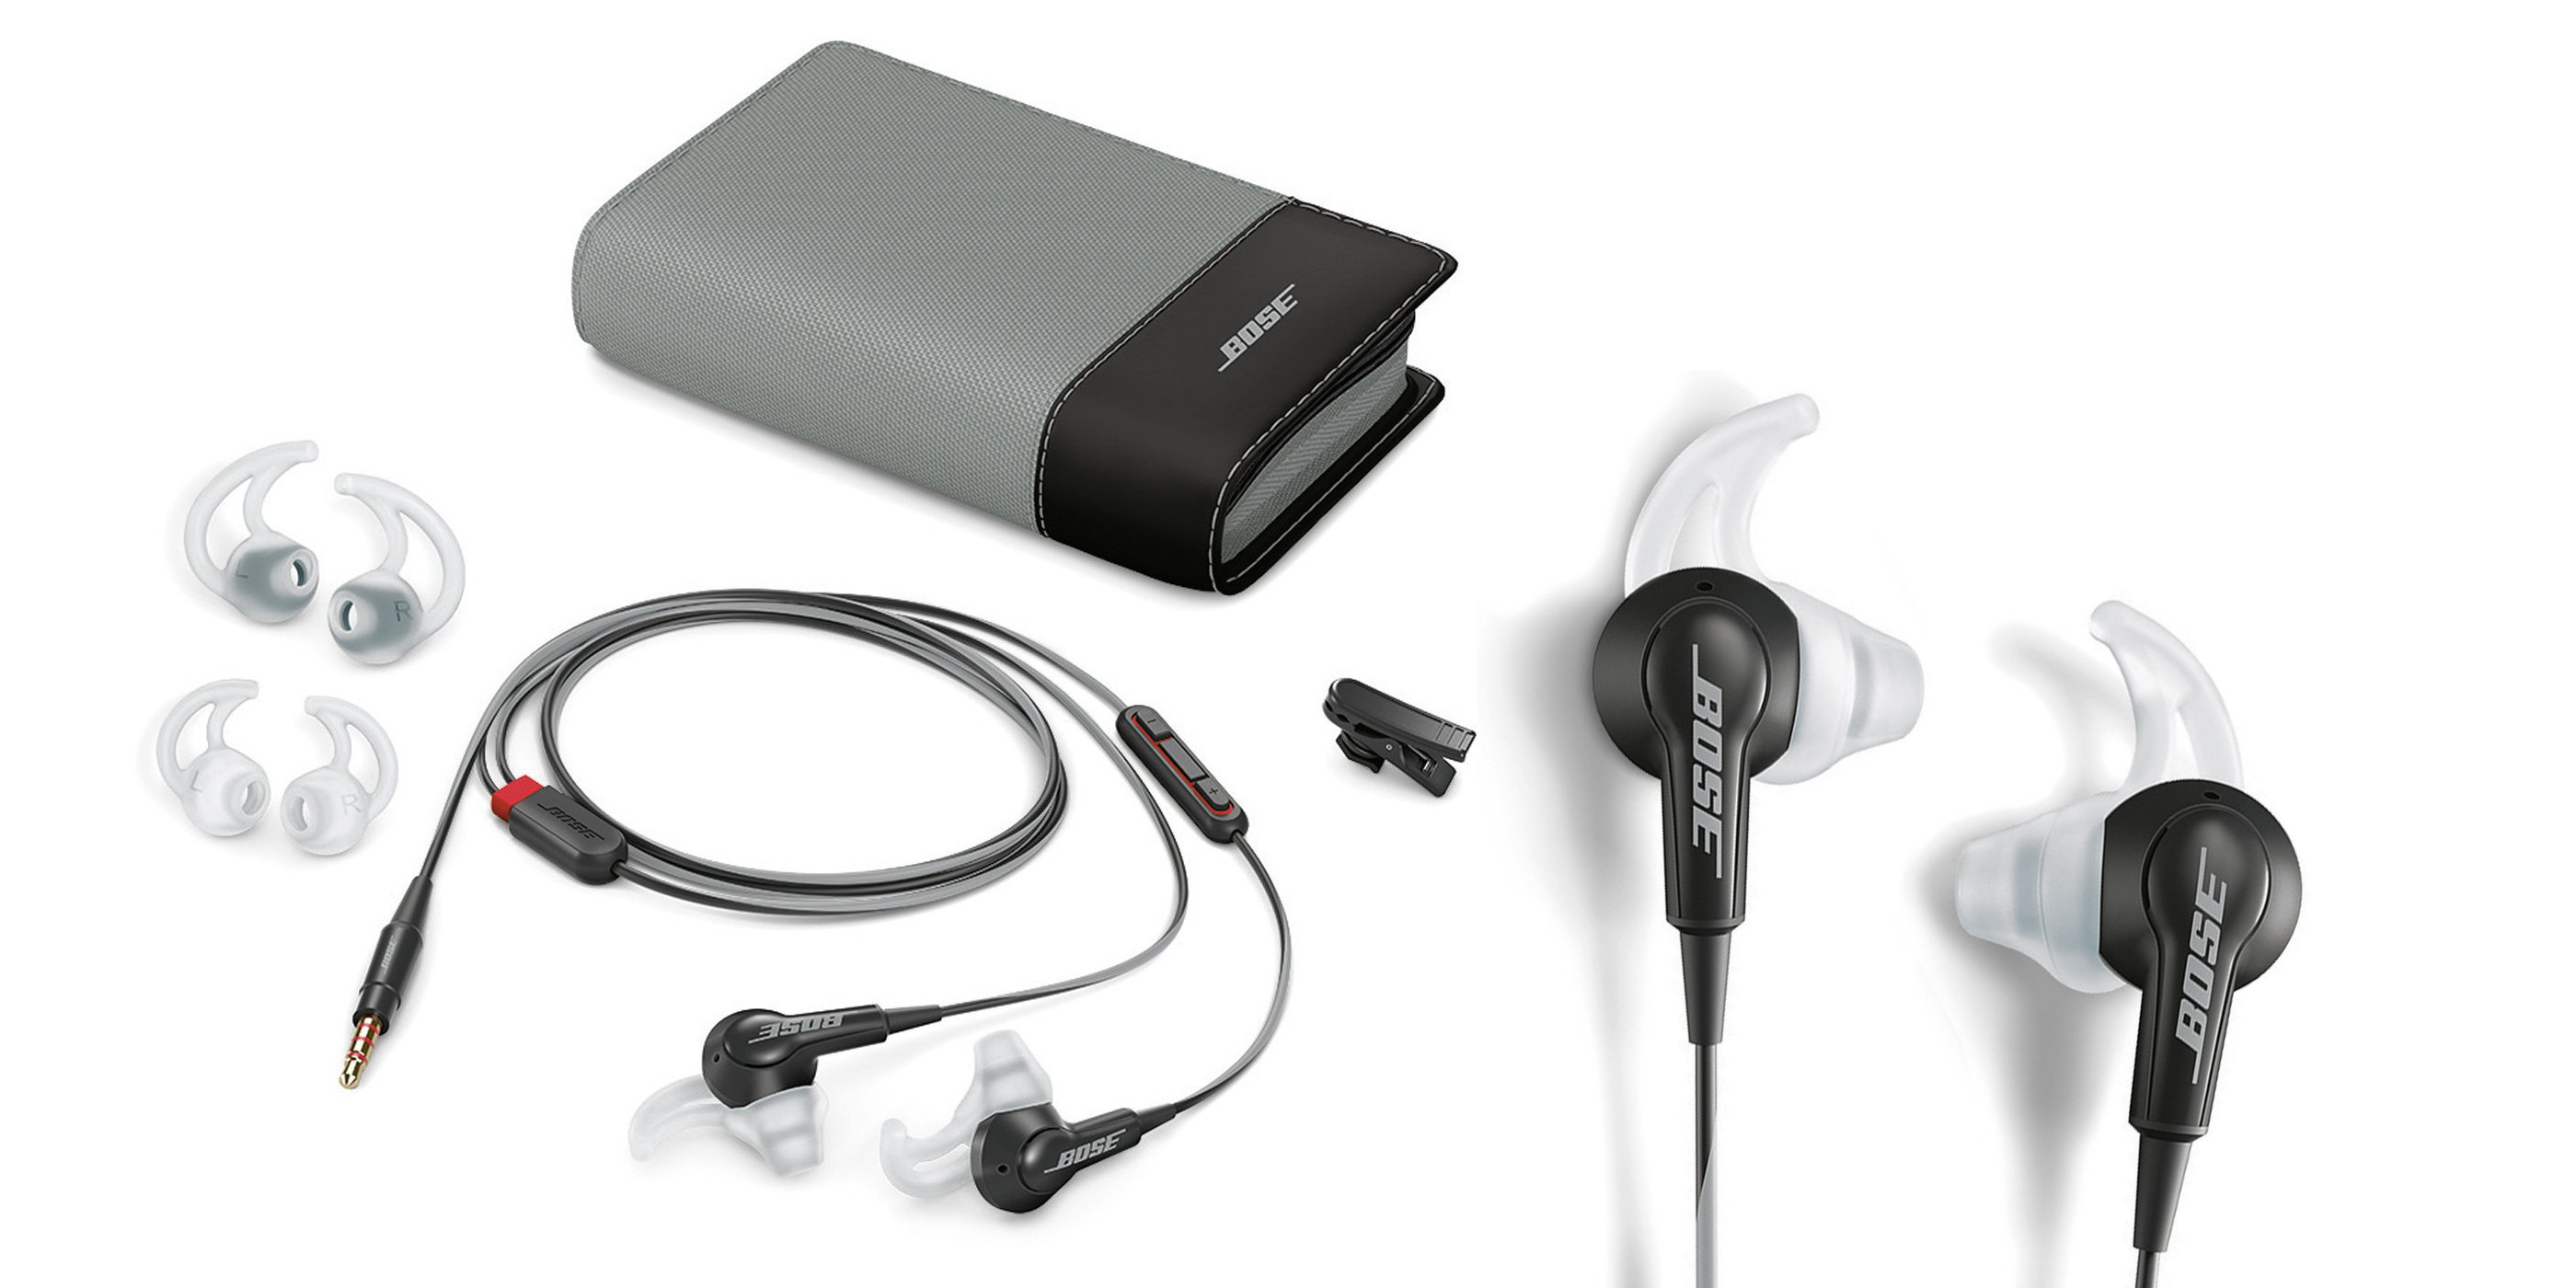 60577b09ce9 Adorama is offering the Bose SoundTrue in-ear headphones in black for  $59.95 shipped today.